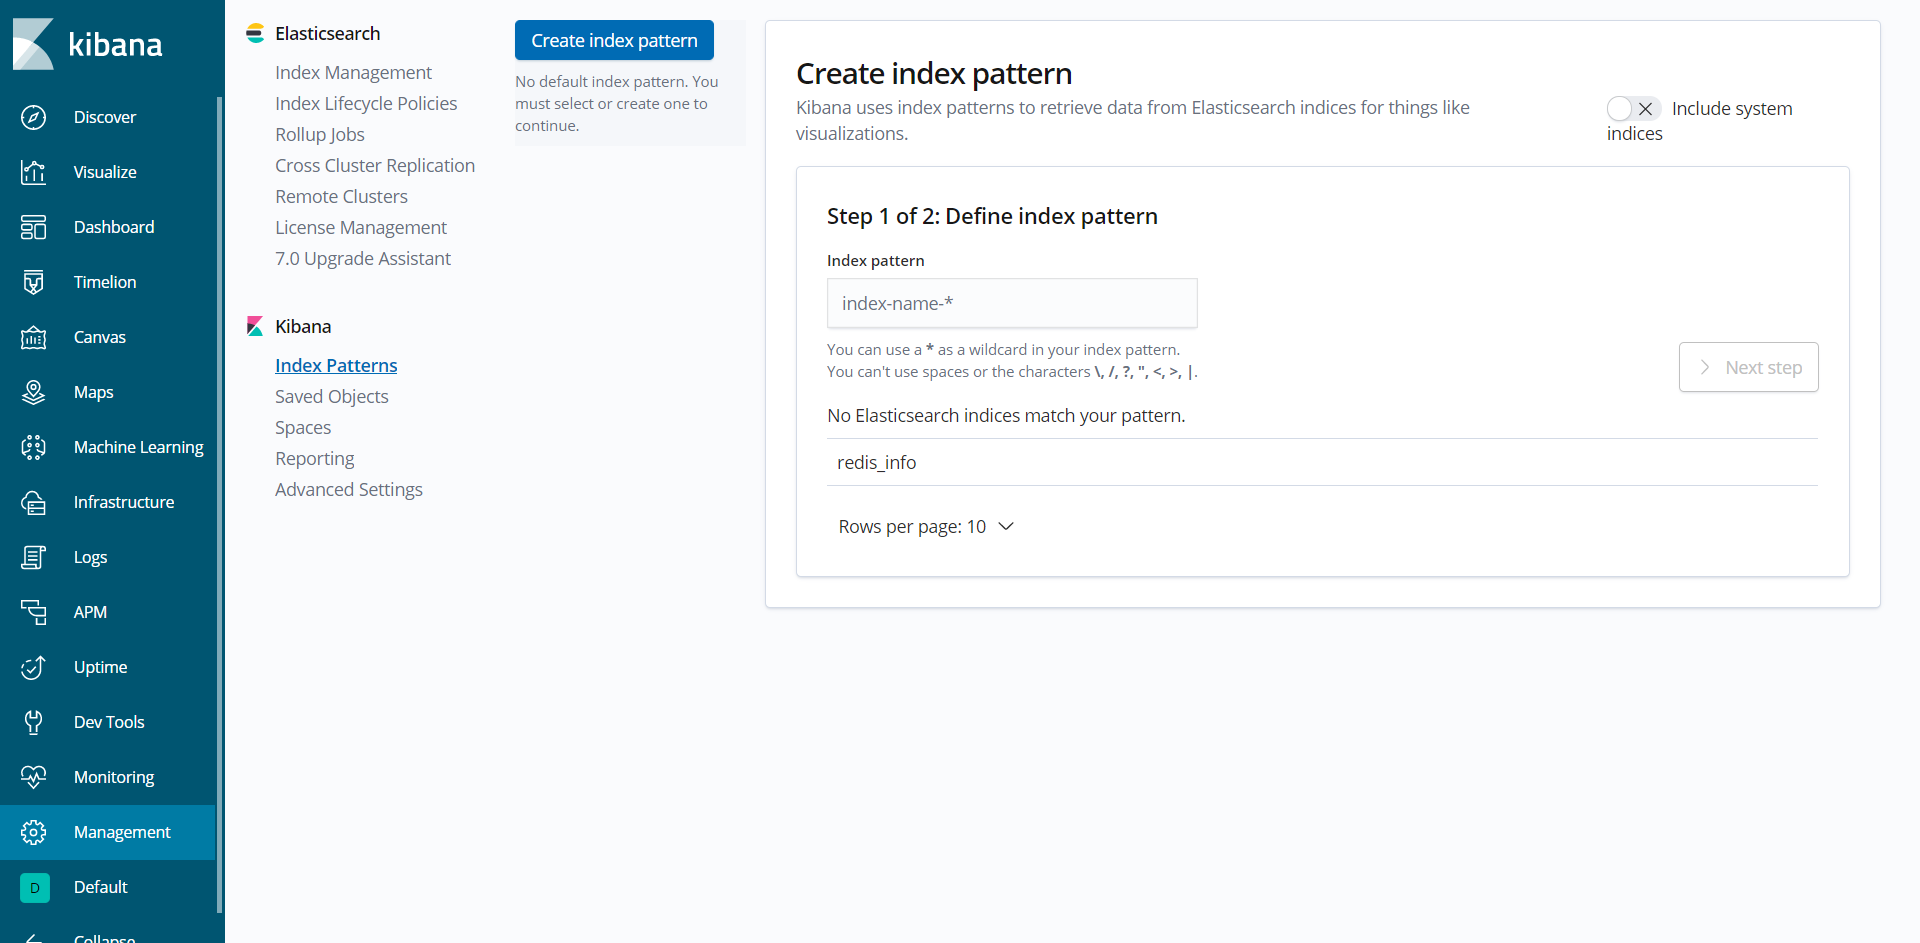 Kibana - Index Pattern Creation